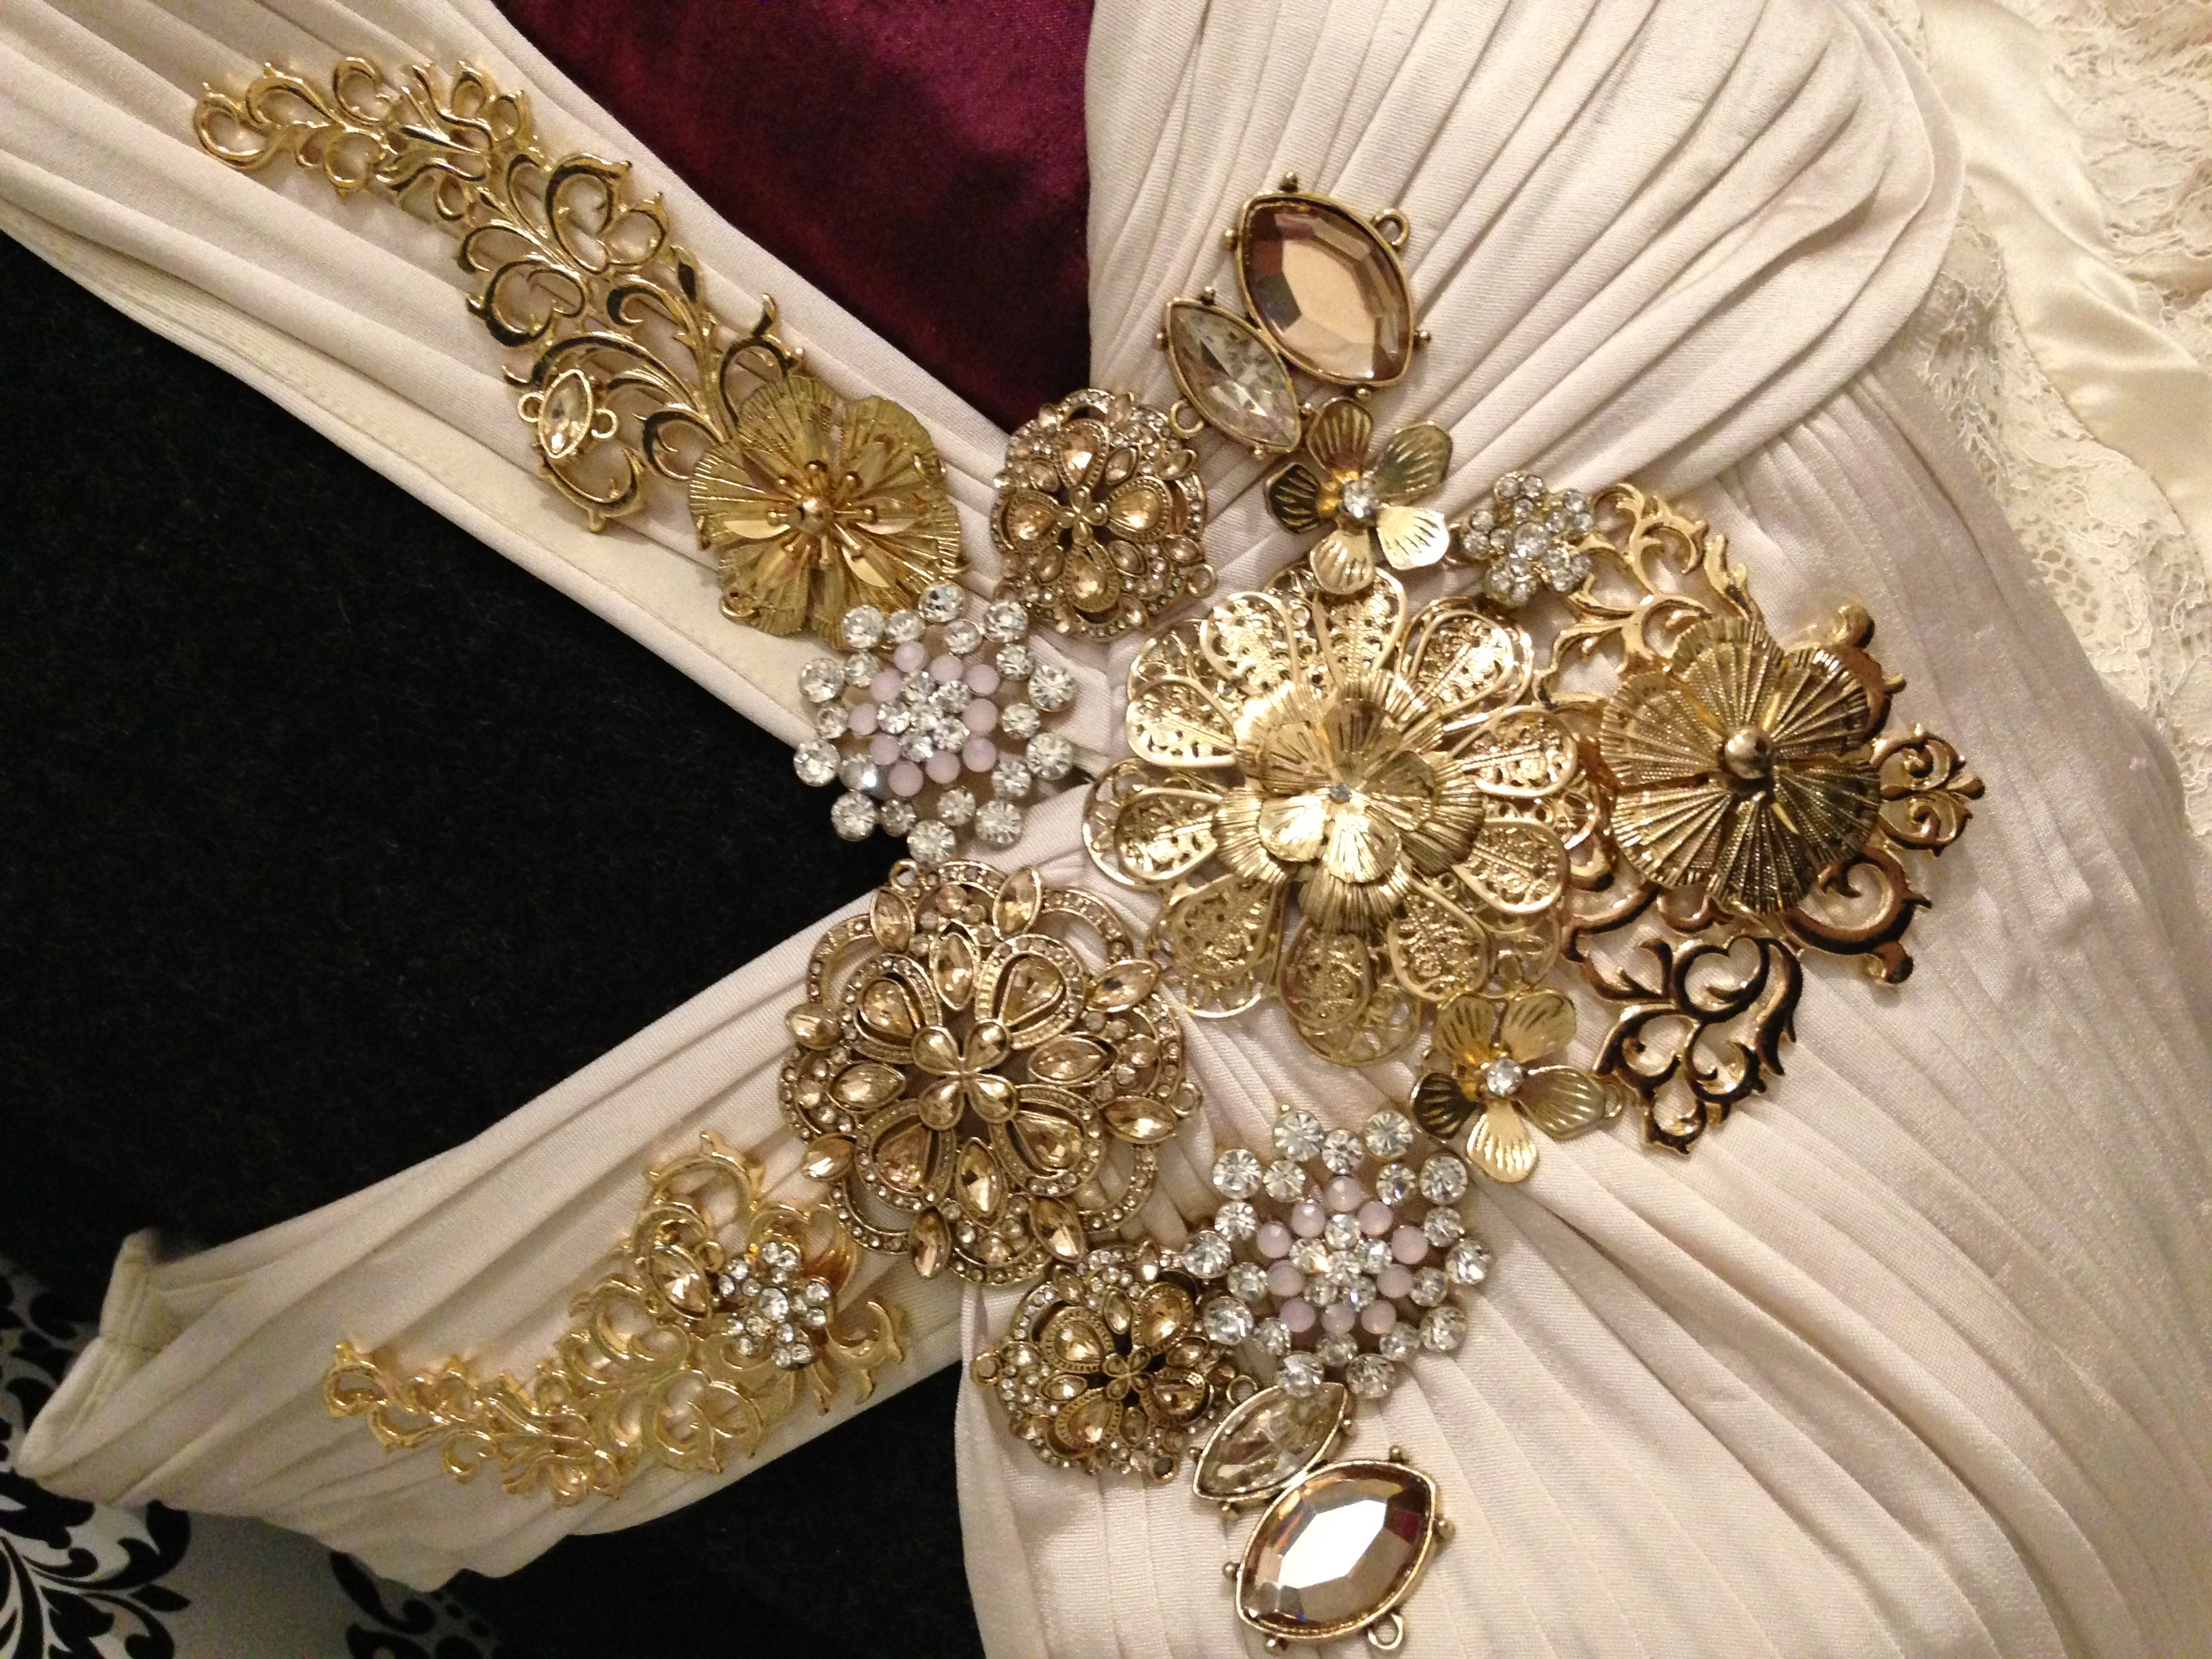 Costume detail